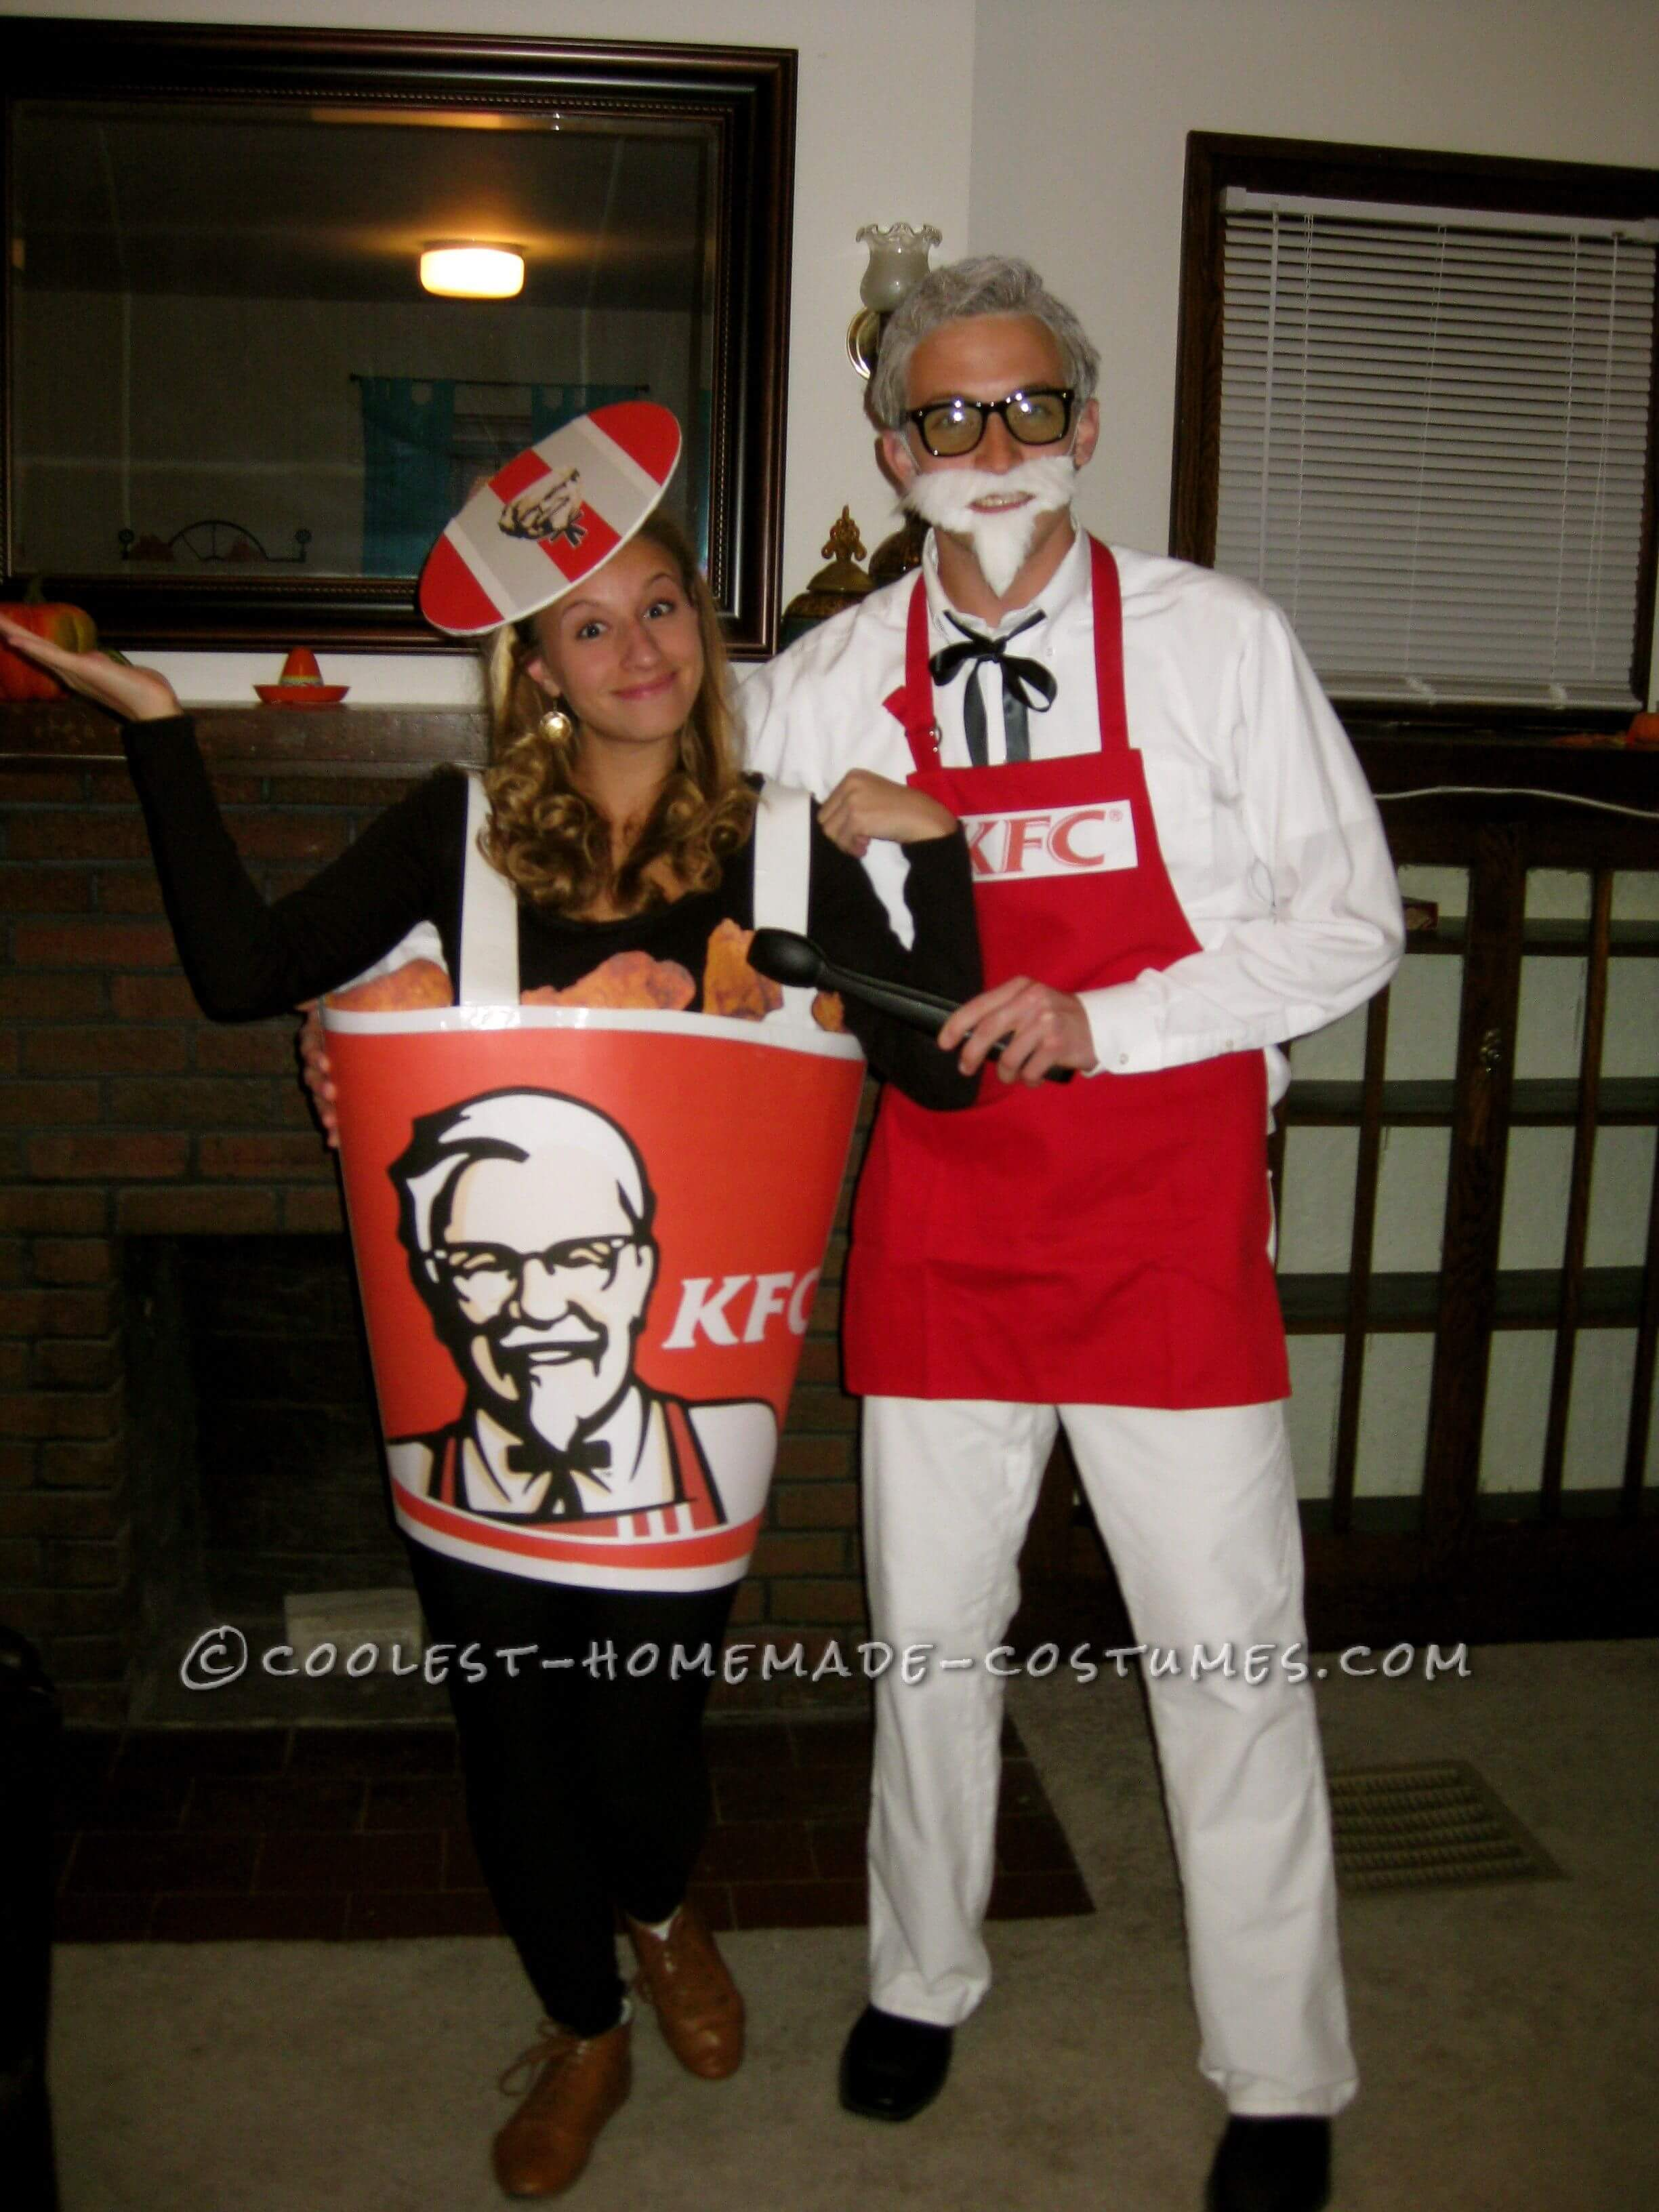 KFC and chicken bucket funny halloween costume for couple